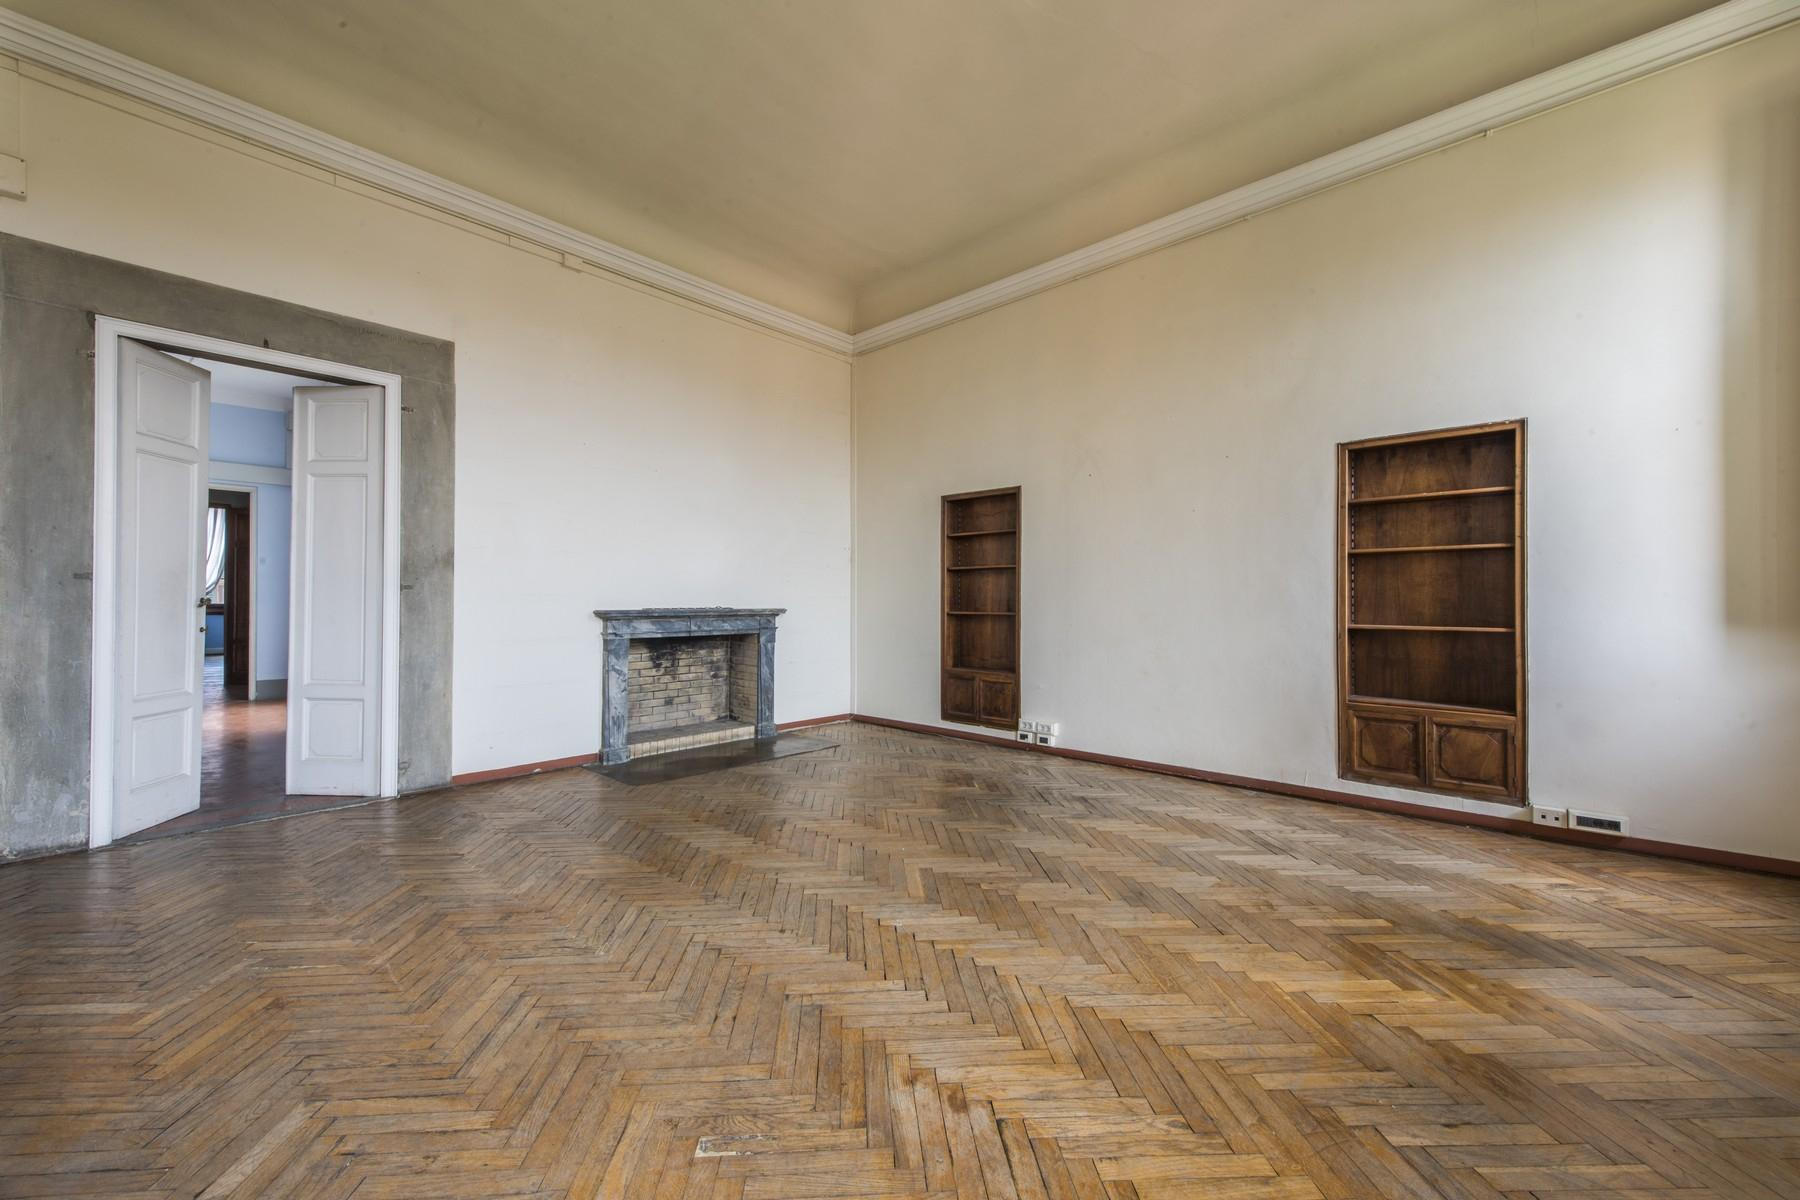 Magnificent 520sqm penthouse in a historic Florentine palazzo. - 9